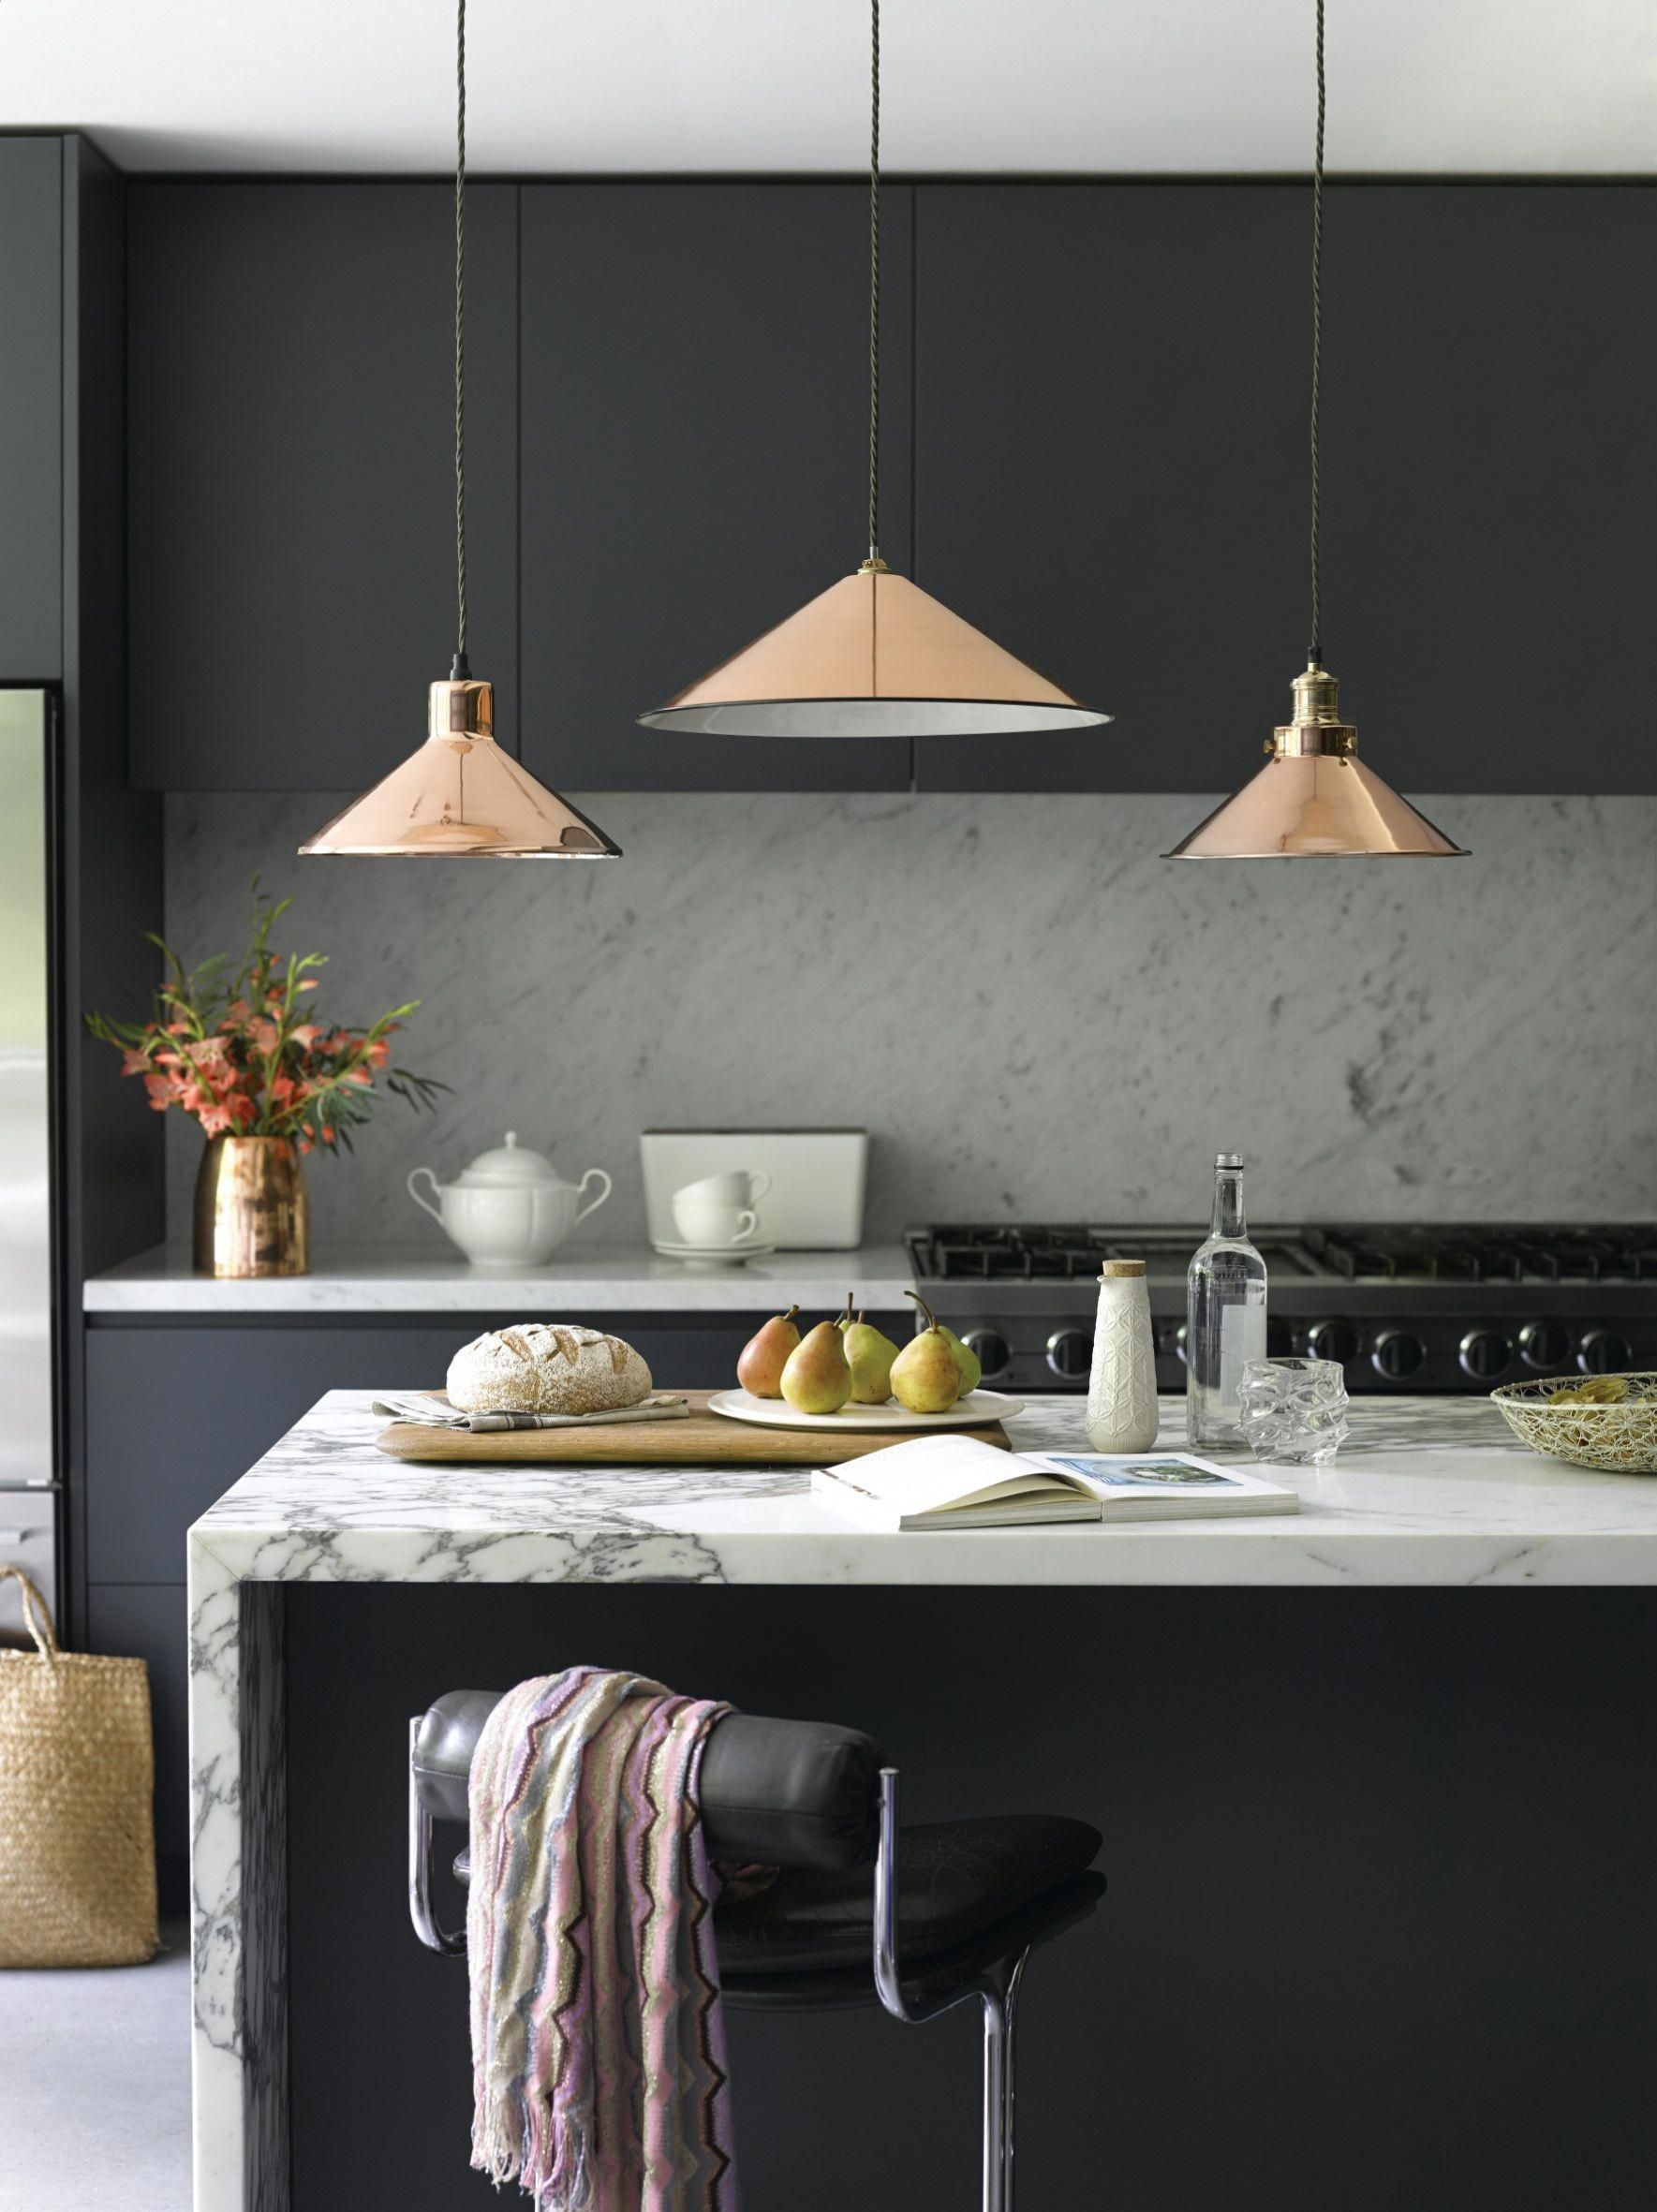 Copper Pendant Lights From Pooky Smallkitchen Black Kitchens Kitchen Lighting Over Table Interior Design Kitchen